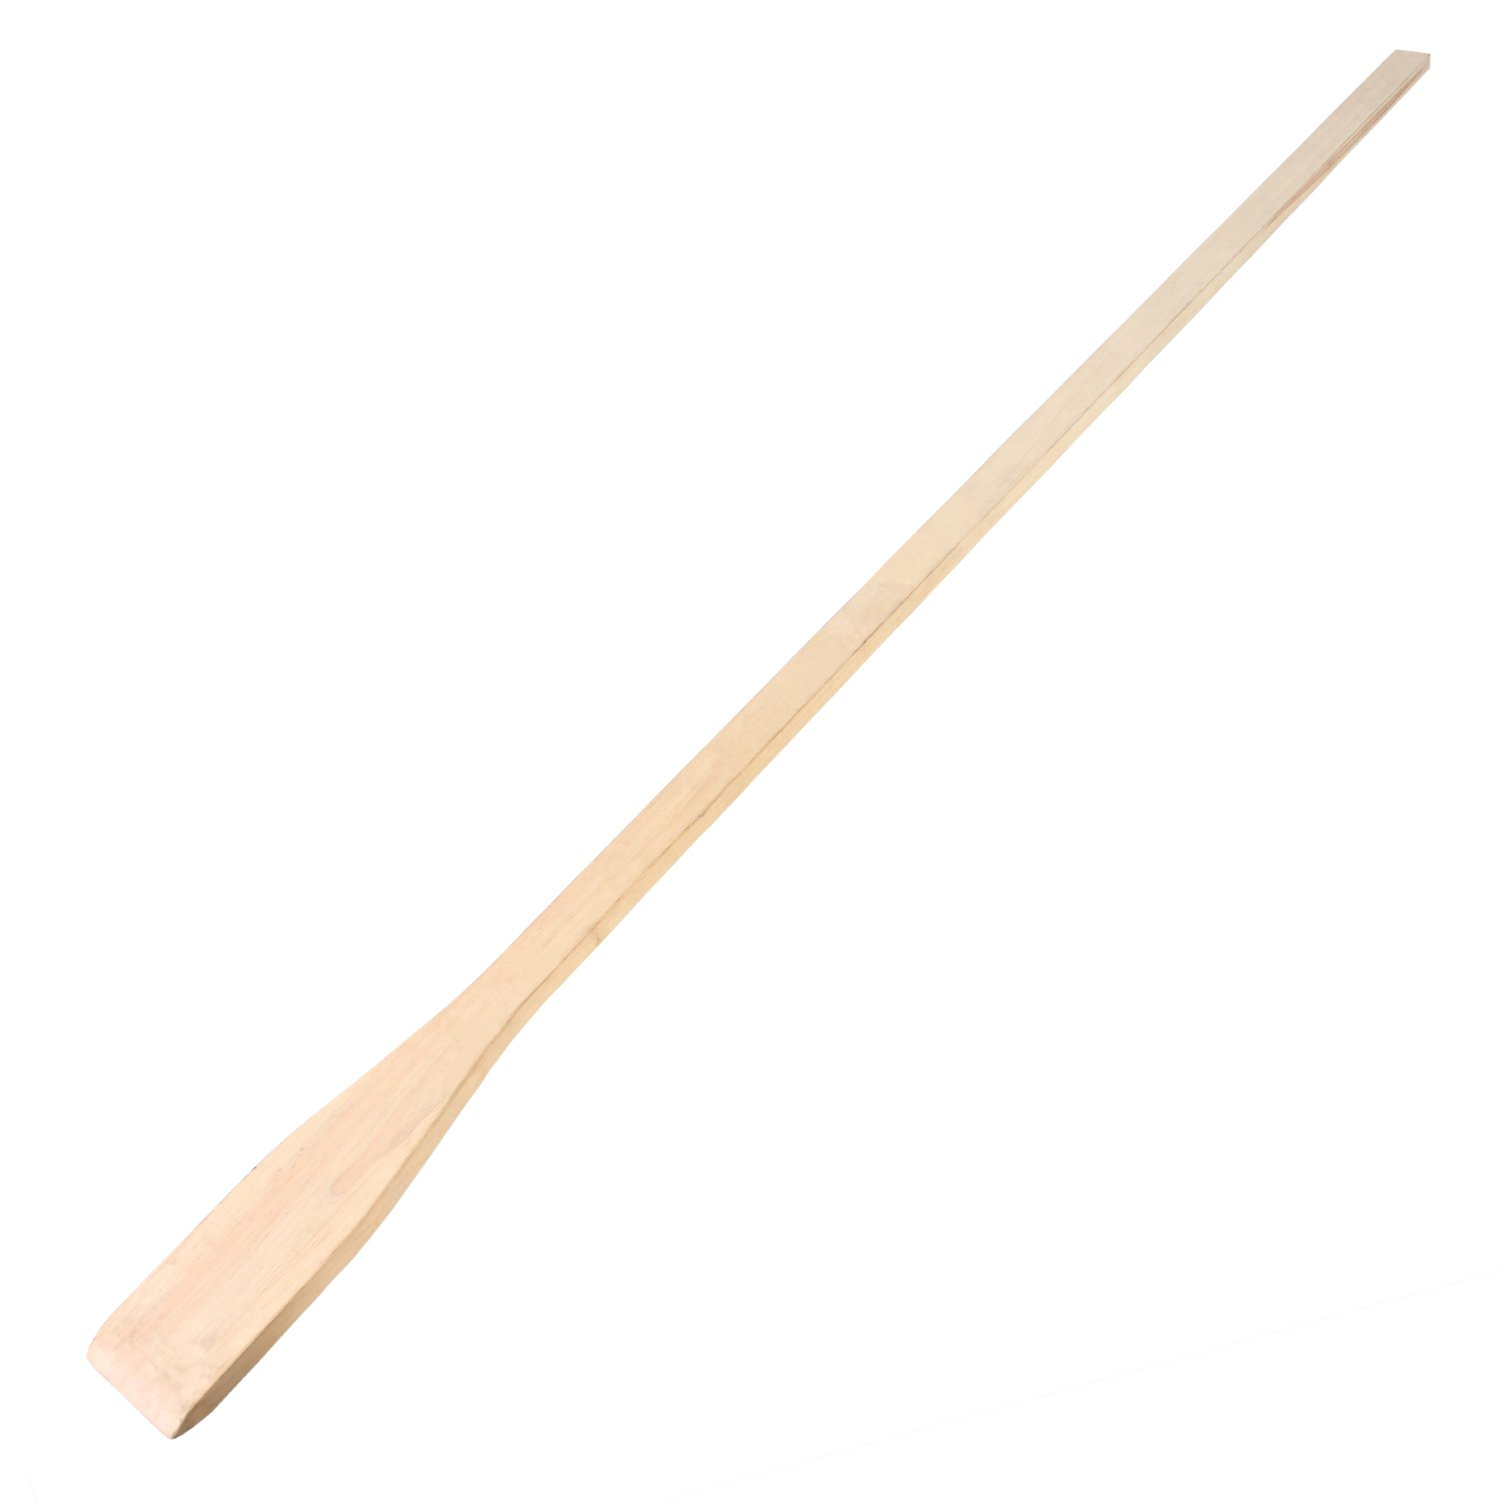 Excellante 60-Inch Wood Mixing Paddles 51mQQn-aw8L